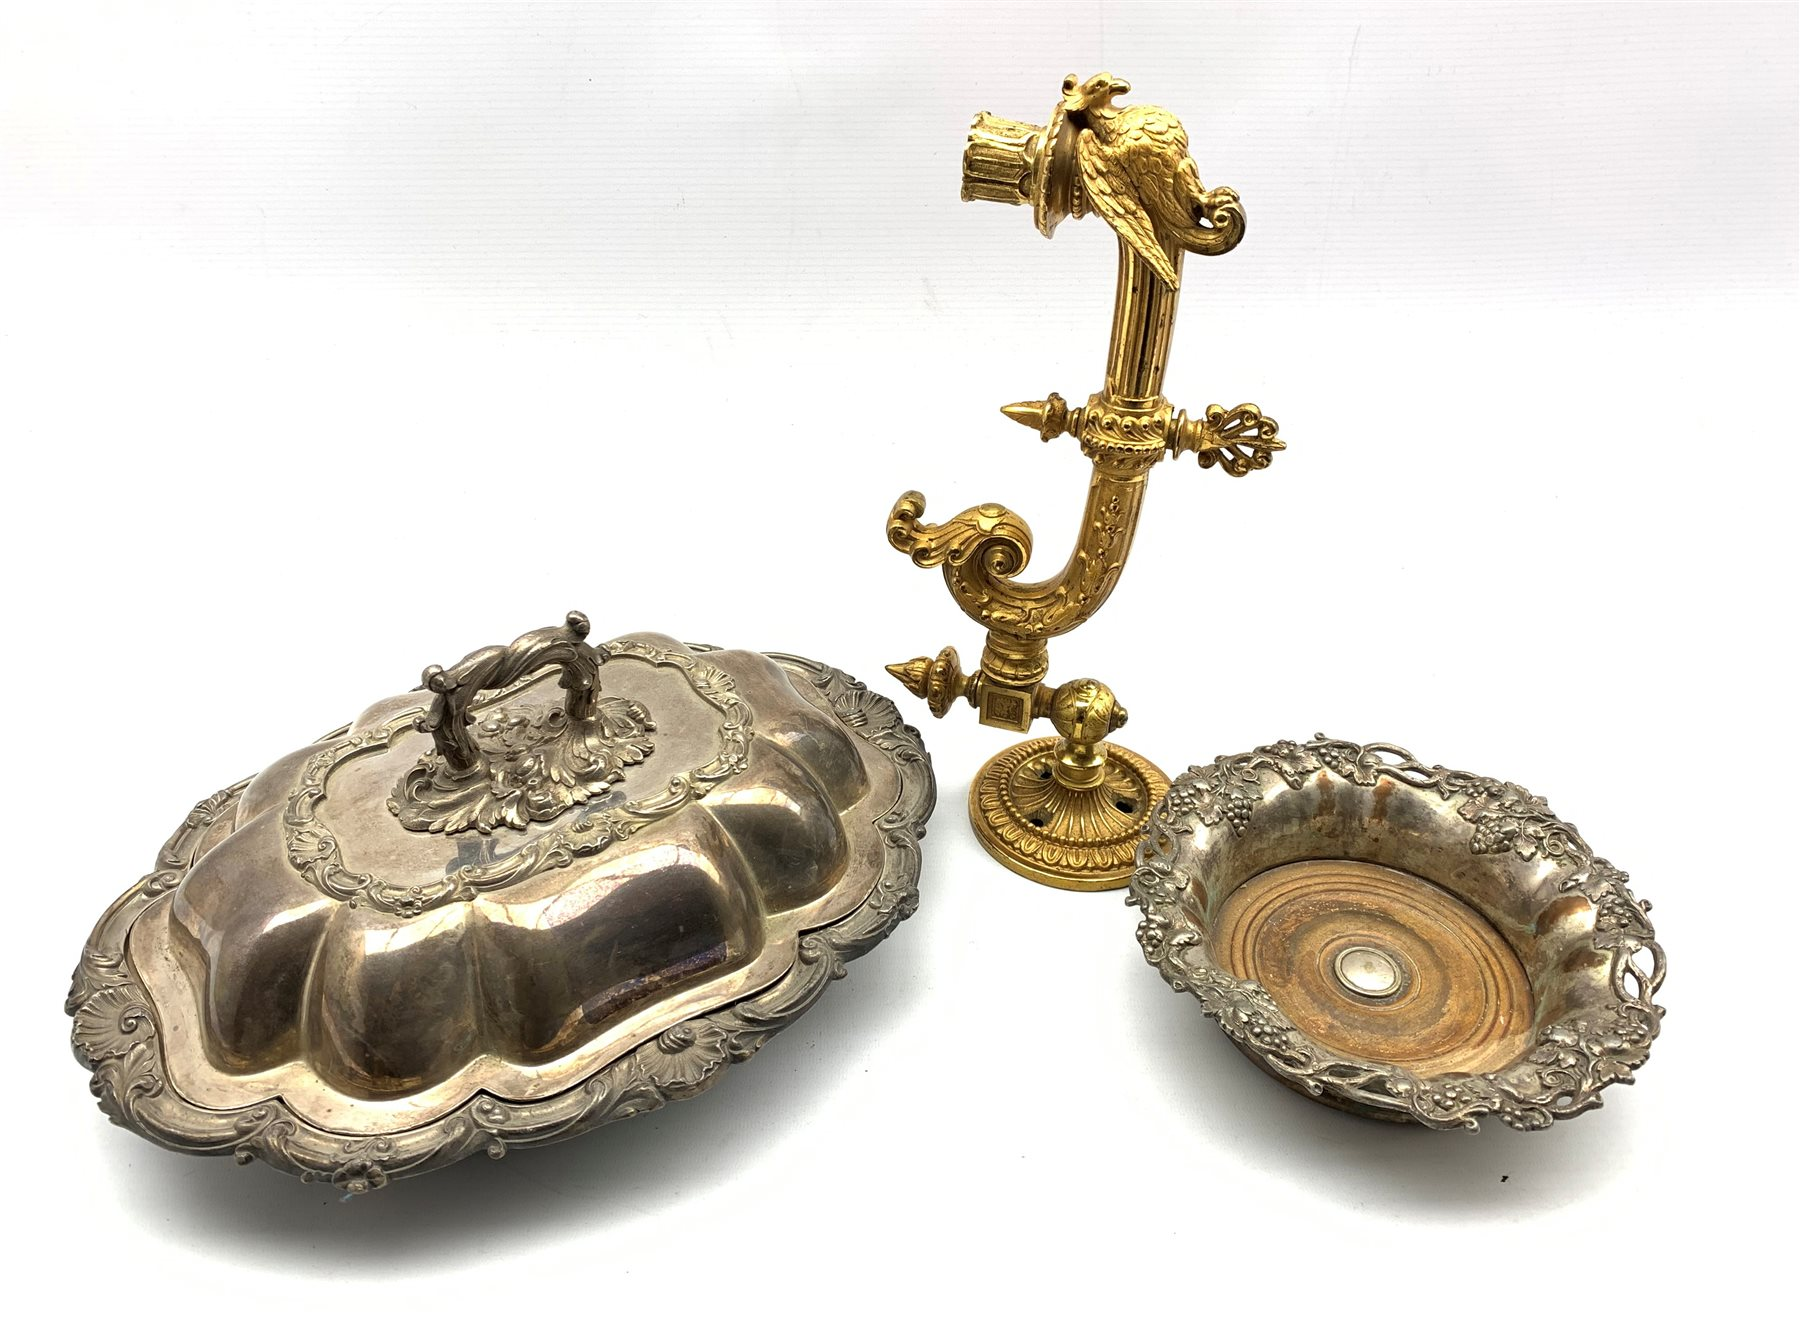 19th century gilt metal gas wall sconce with swivel plate, eagle, shell and scroll decoration L32cm,